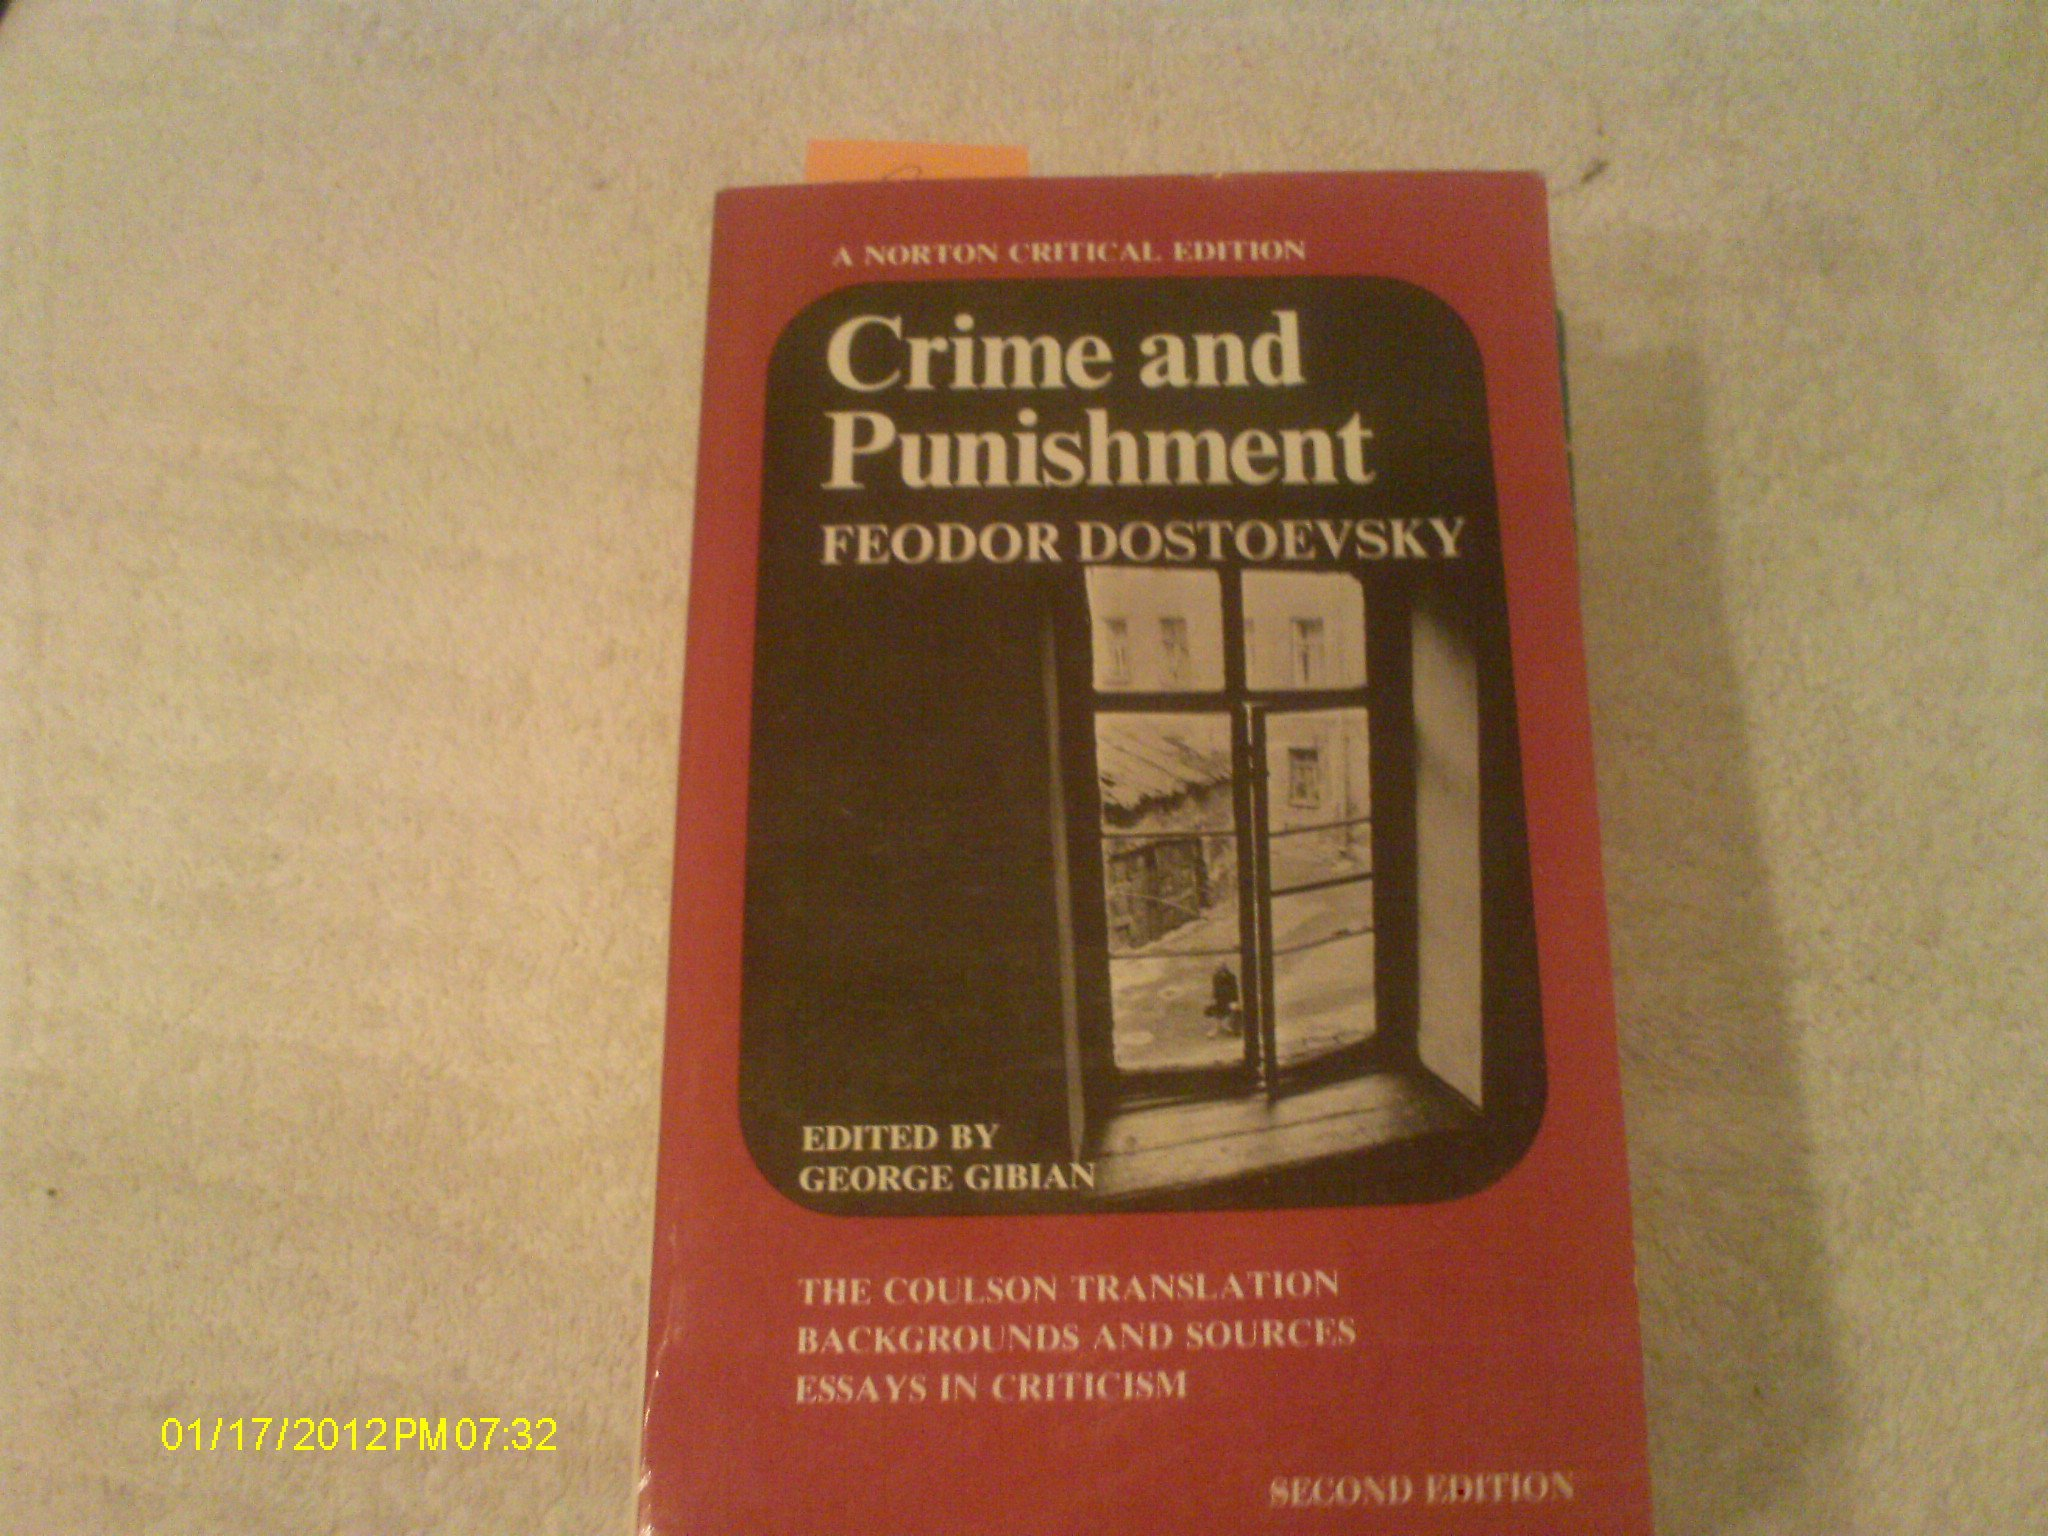 crime and punishment the coulson translation backgrounds and  crime and punishment the coulson translation backgrounds and sources essays in criticism a norton critical edition feodor dostoevsky george gibian